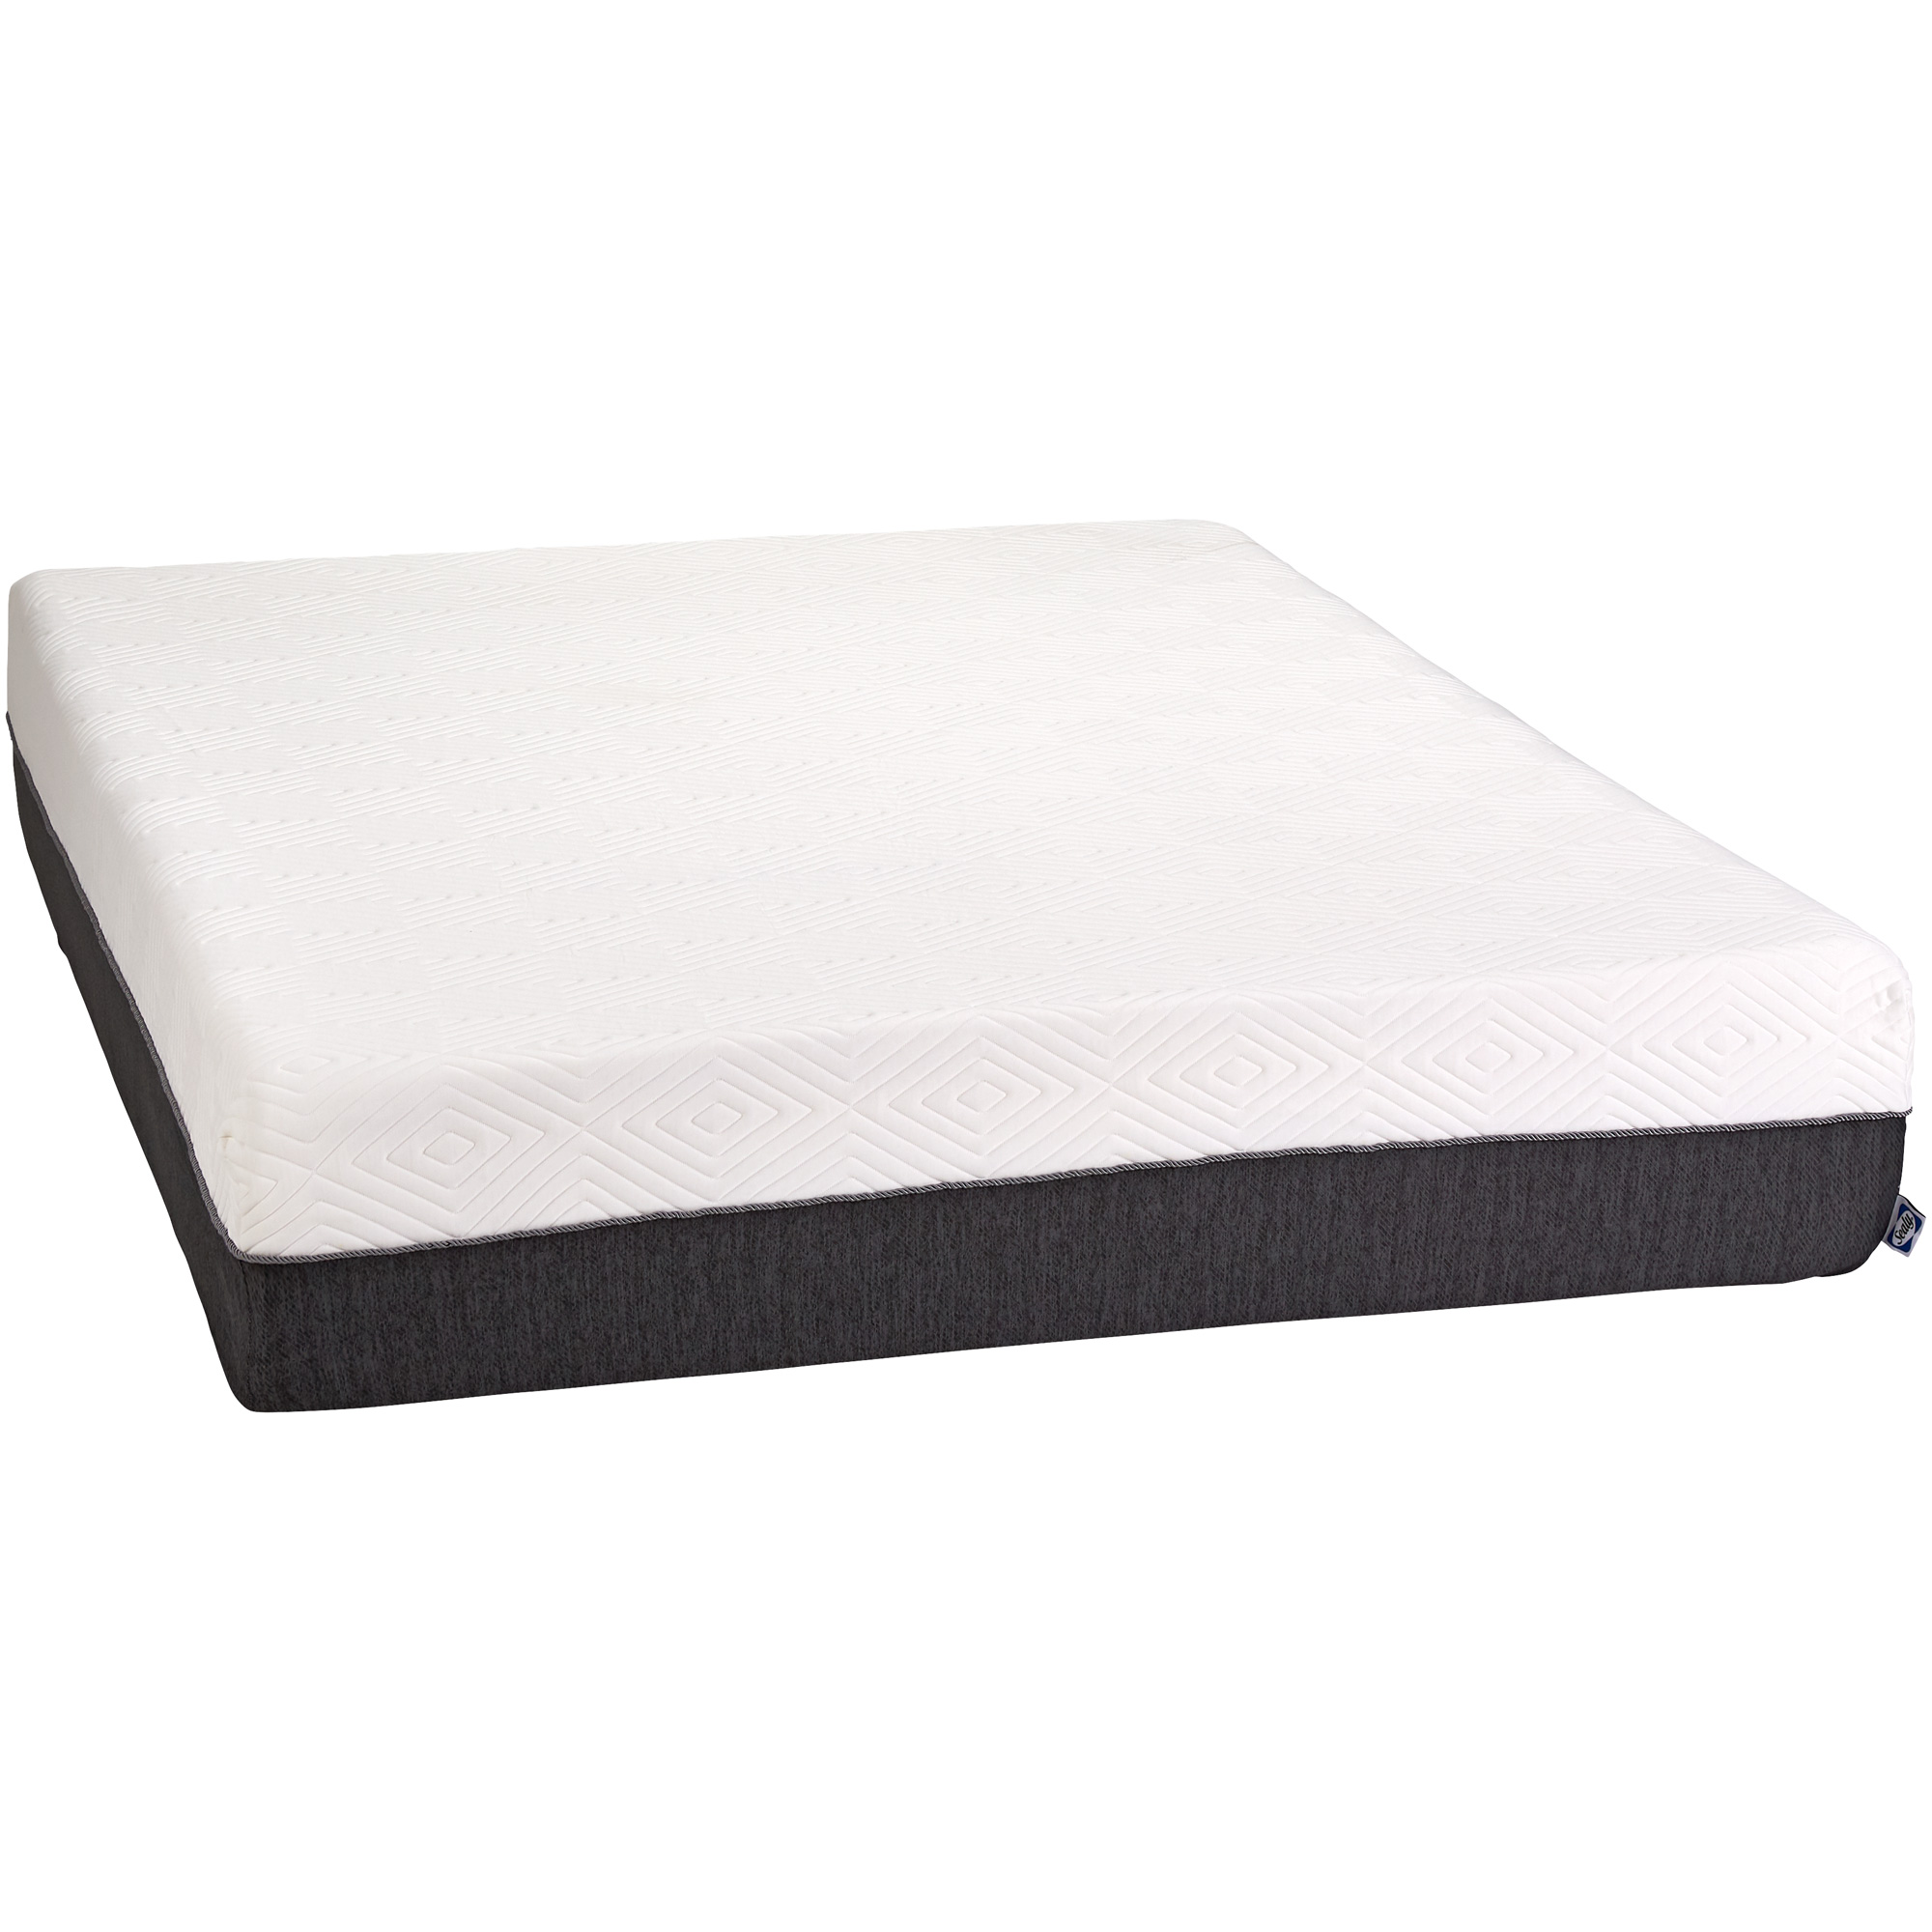 """Slumbercrest 12"""" Memory Foam Queen Mattress in a Box"""